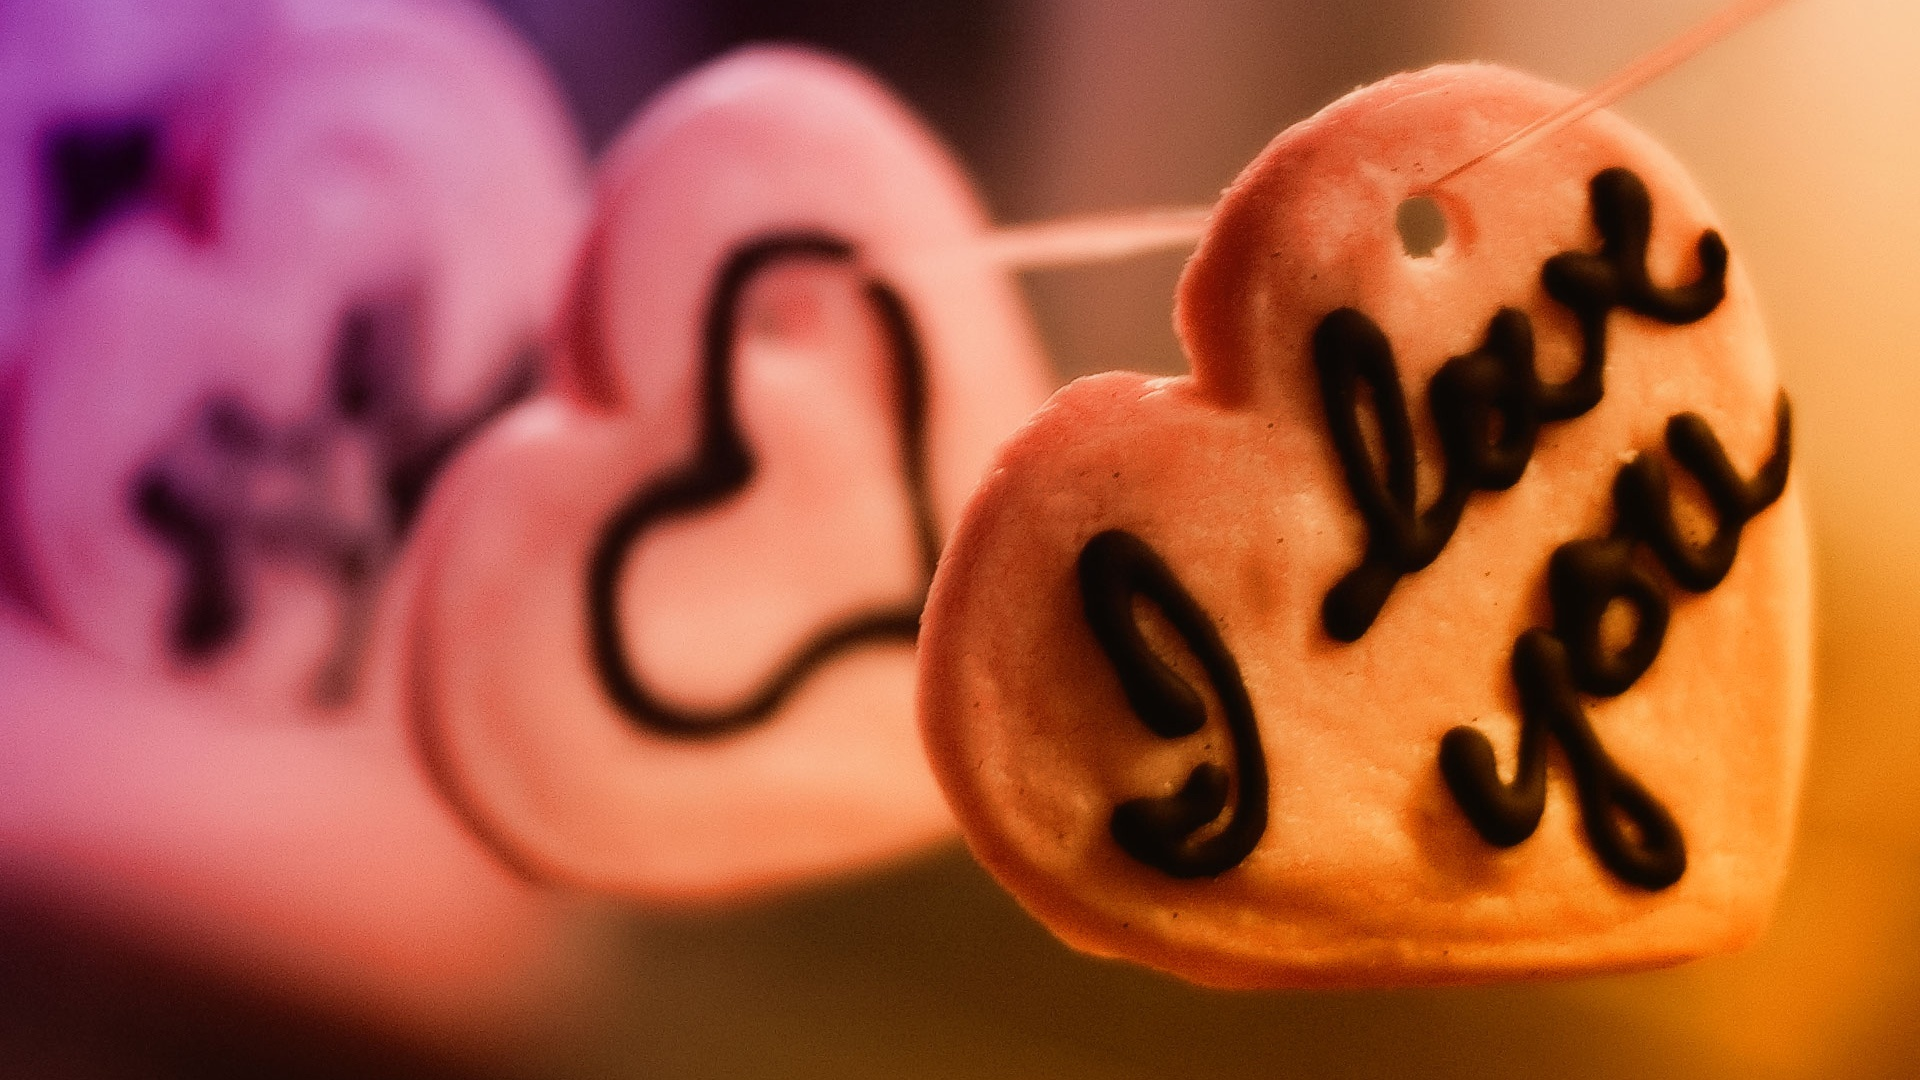 i love you 2 wallpapers in jpg format for free download